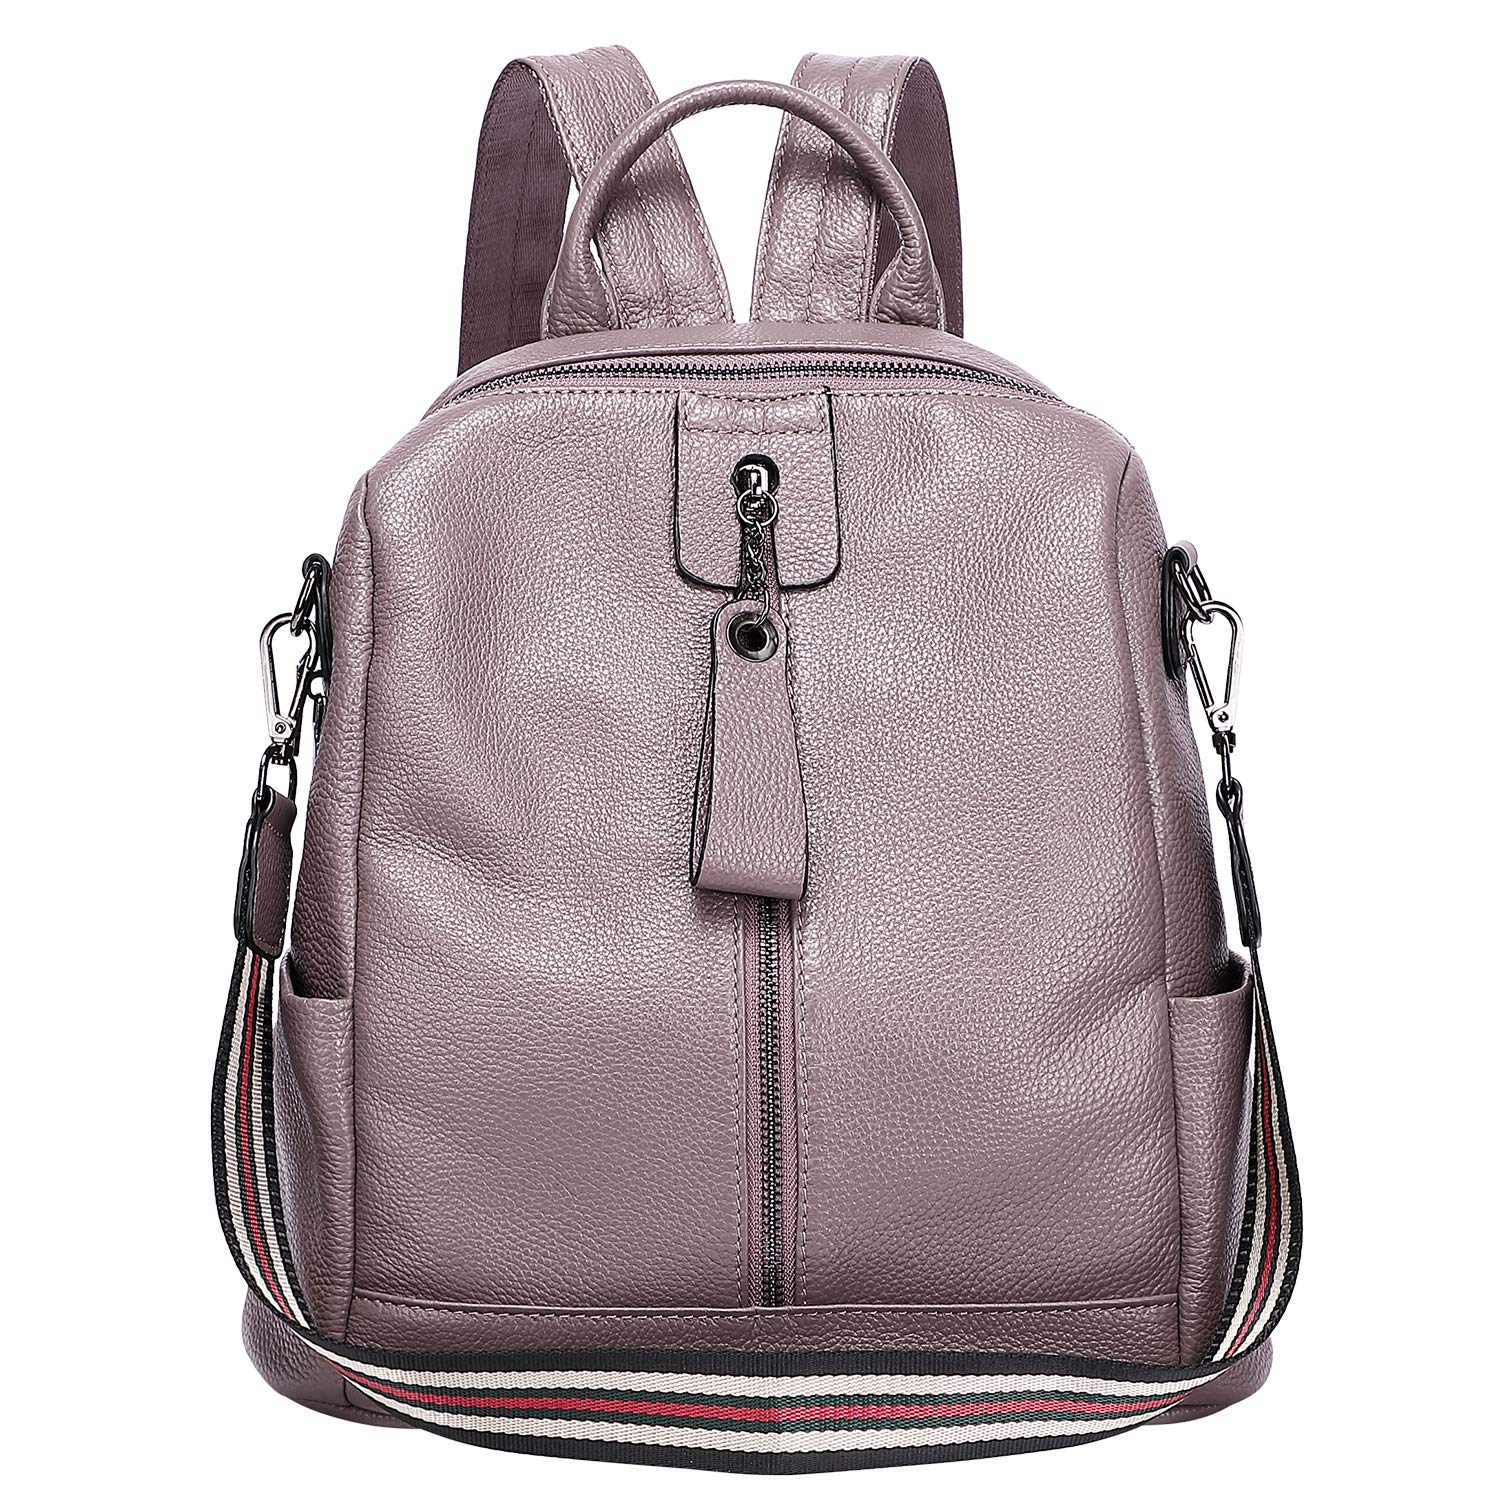 ALTOSY Fashion Genuine Leather Backpack Purse Shoulder Bag for Women (S61 Taro Purple) by ALTOSY